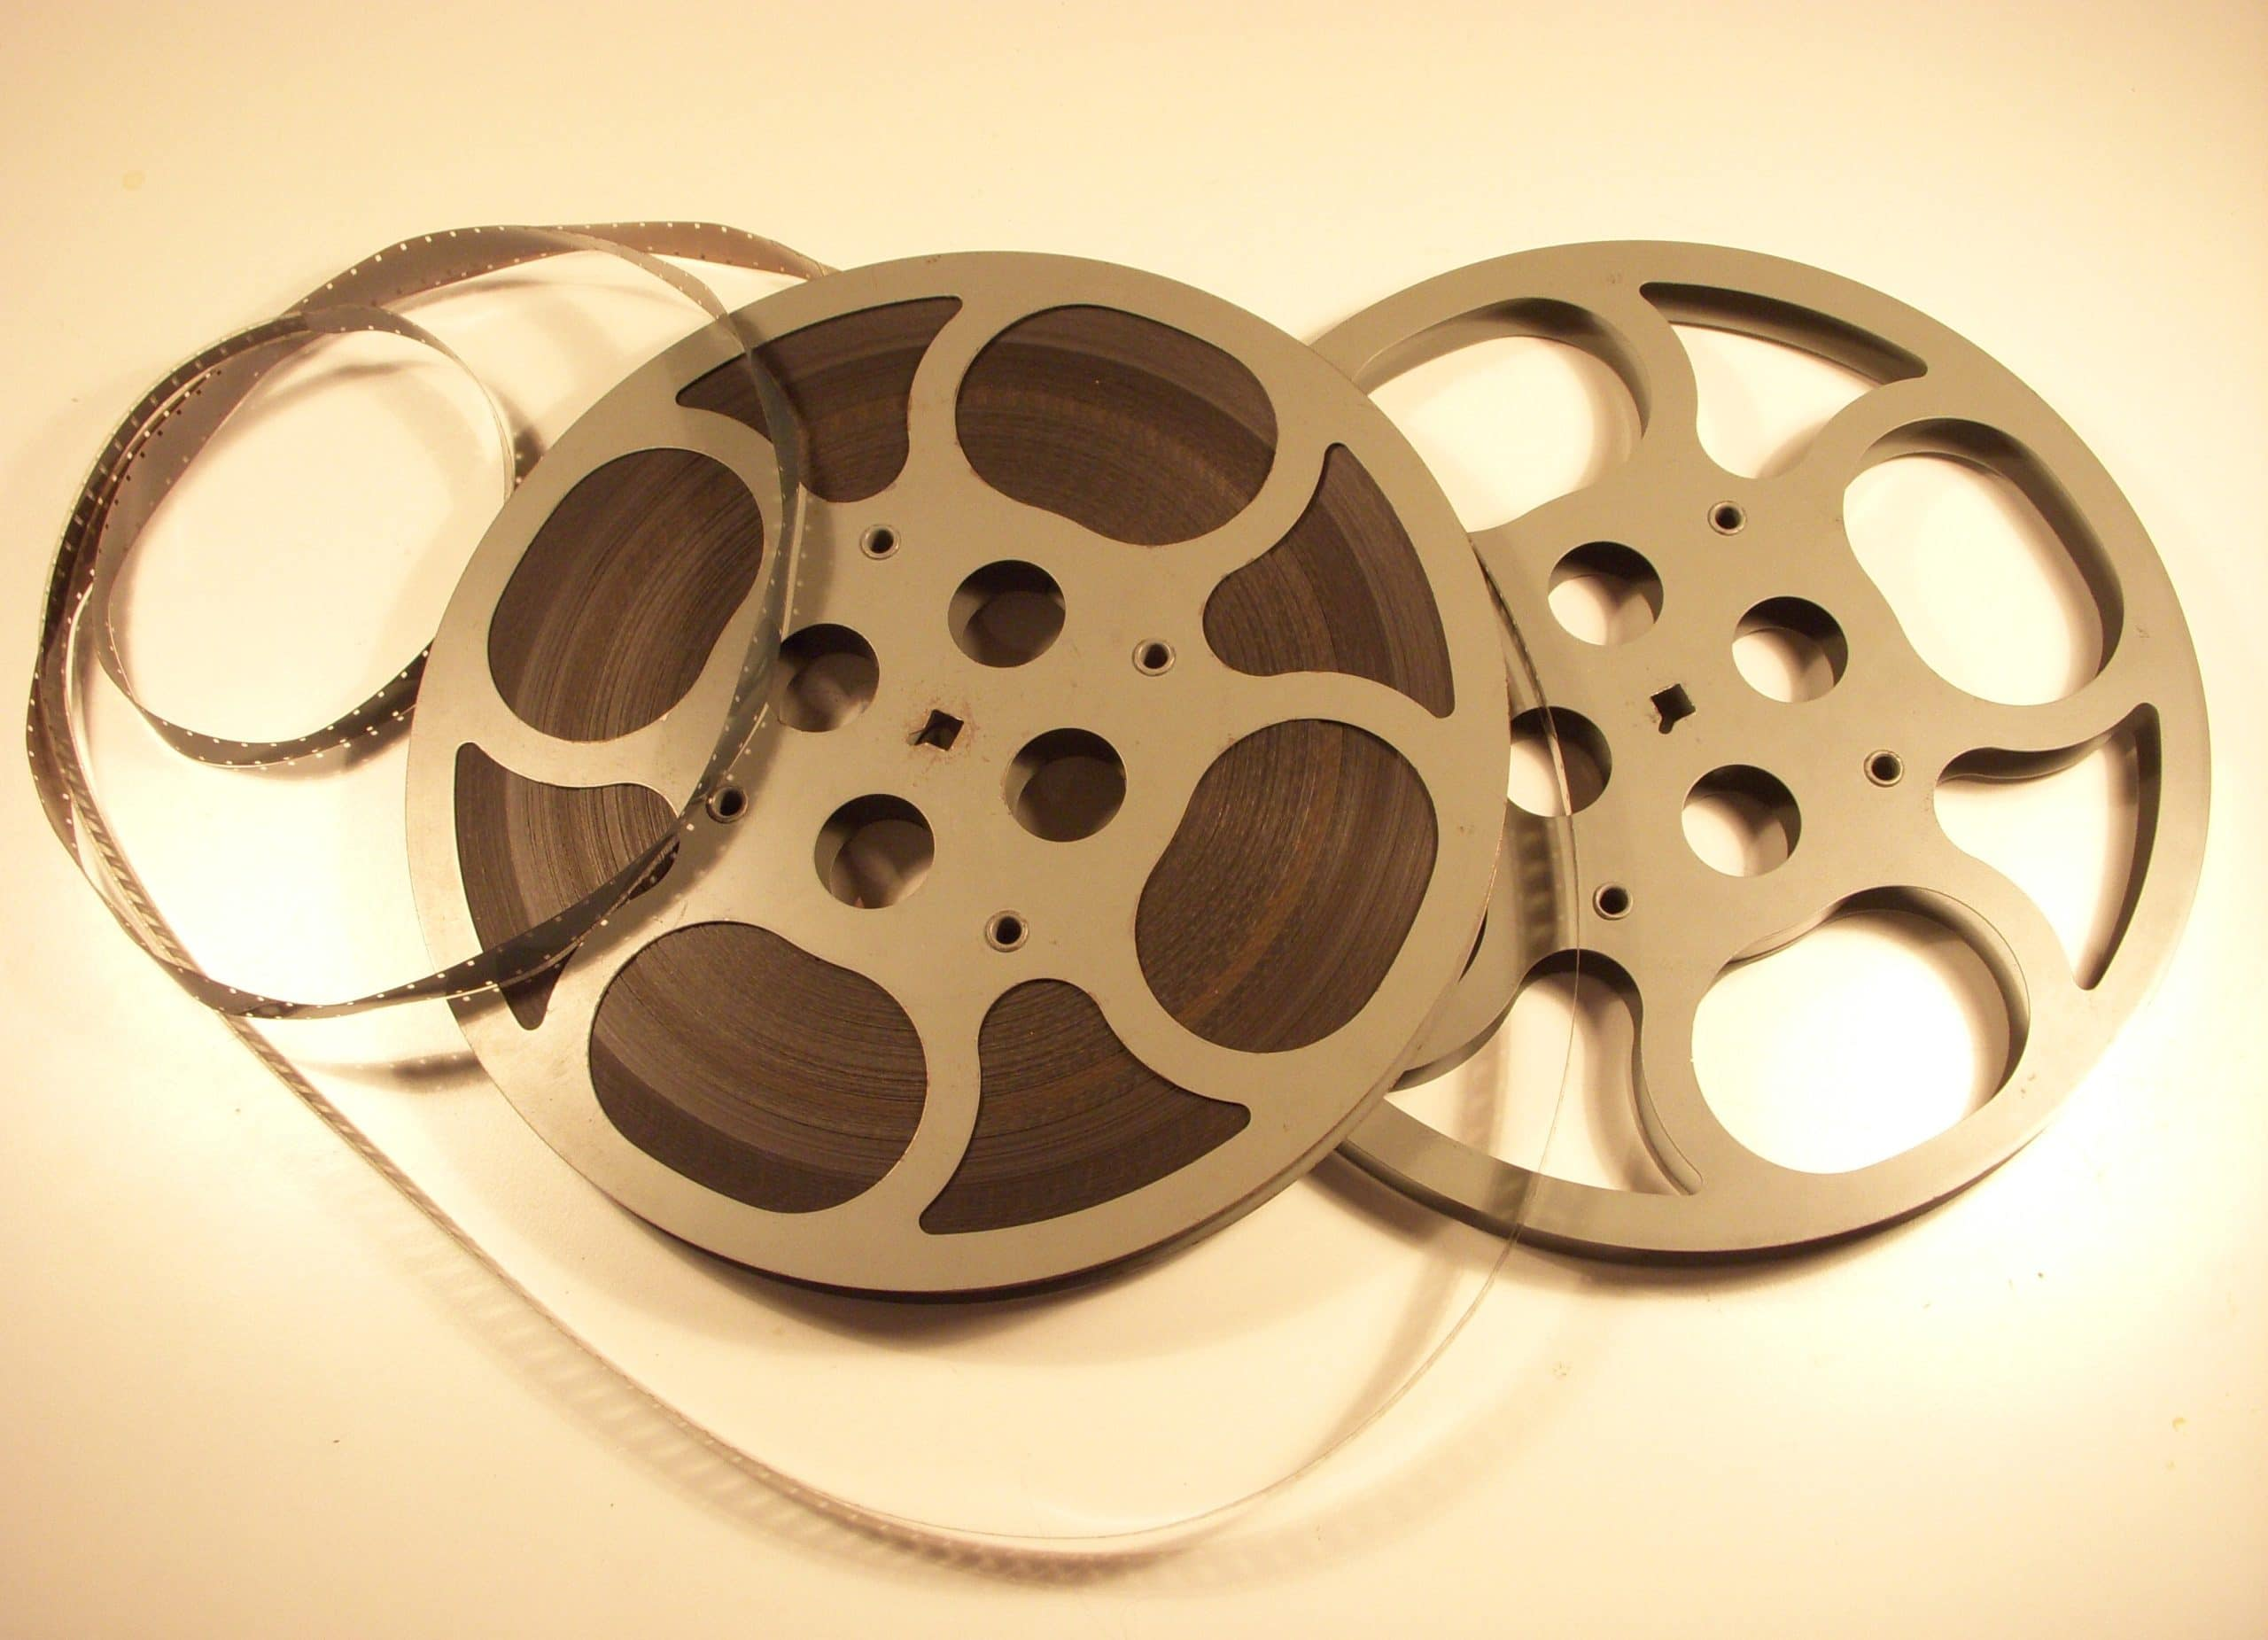 16 mm film reels artistically stacked